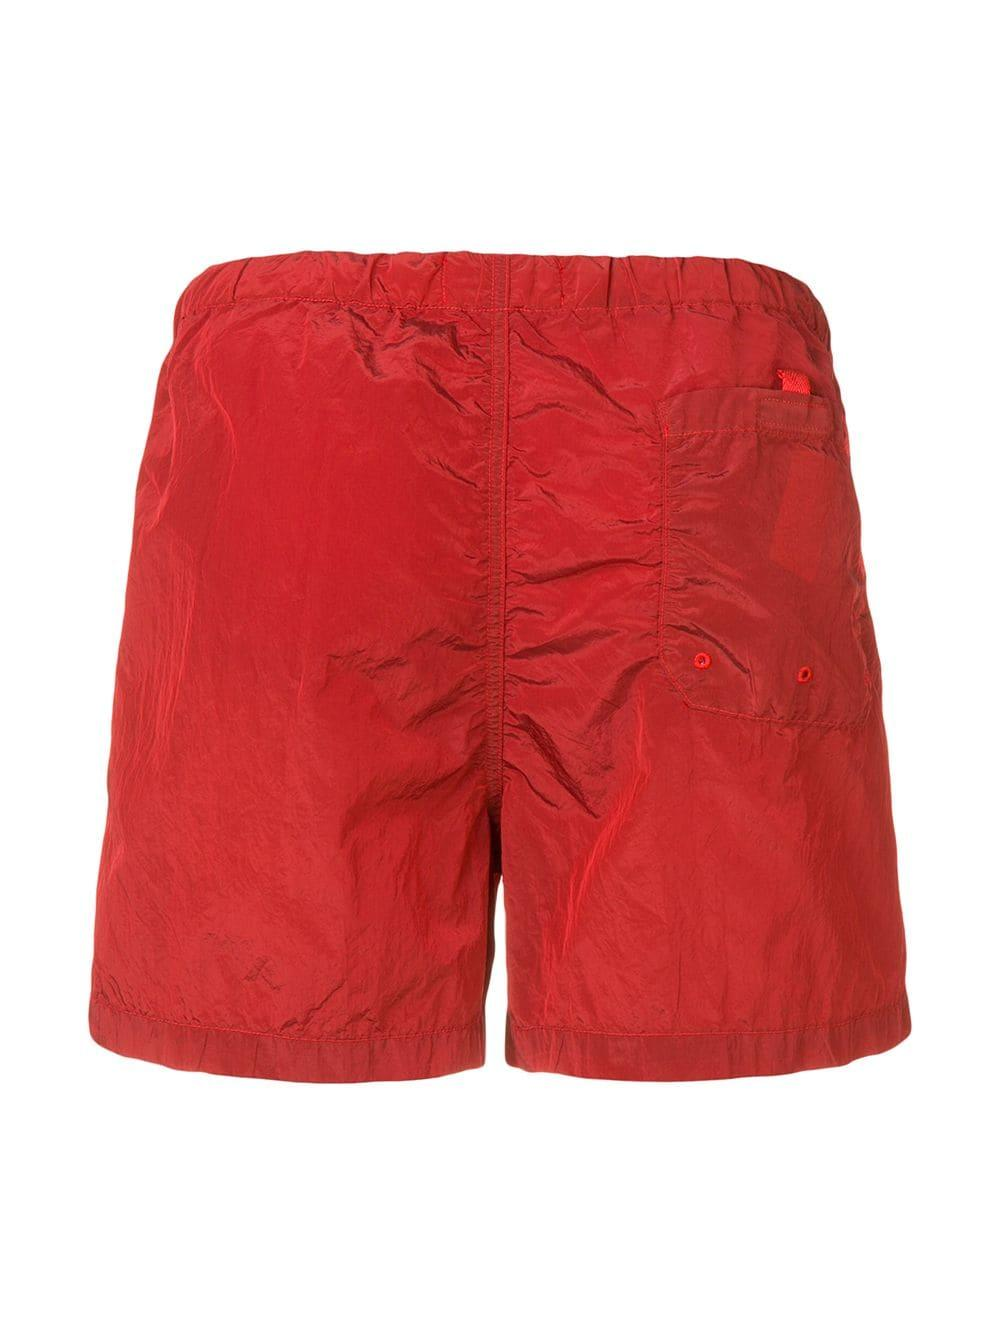 225322d925 Lyst - Stone Island Logo Patch Swim Shorts in Red for Men